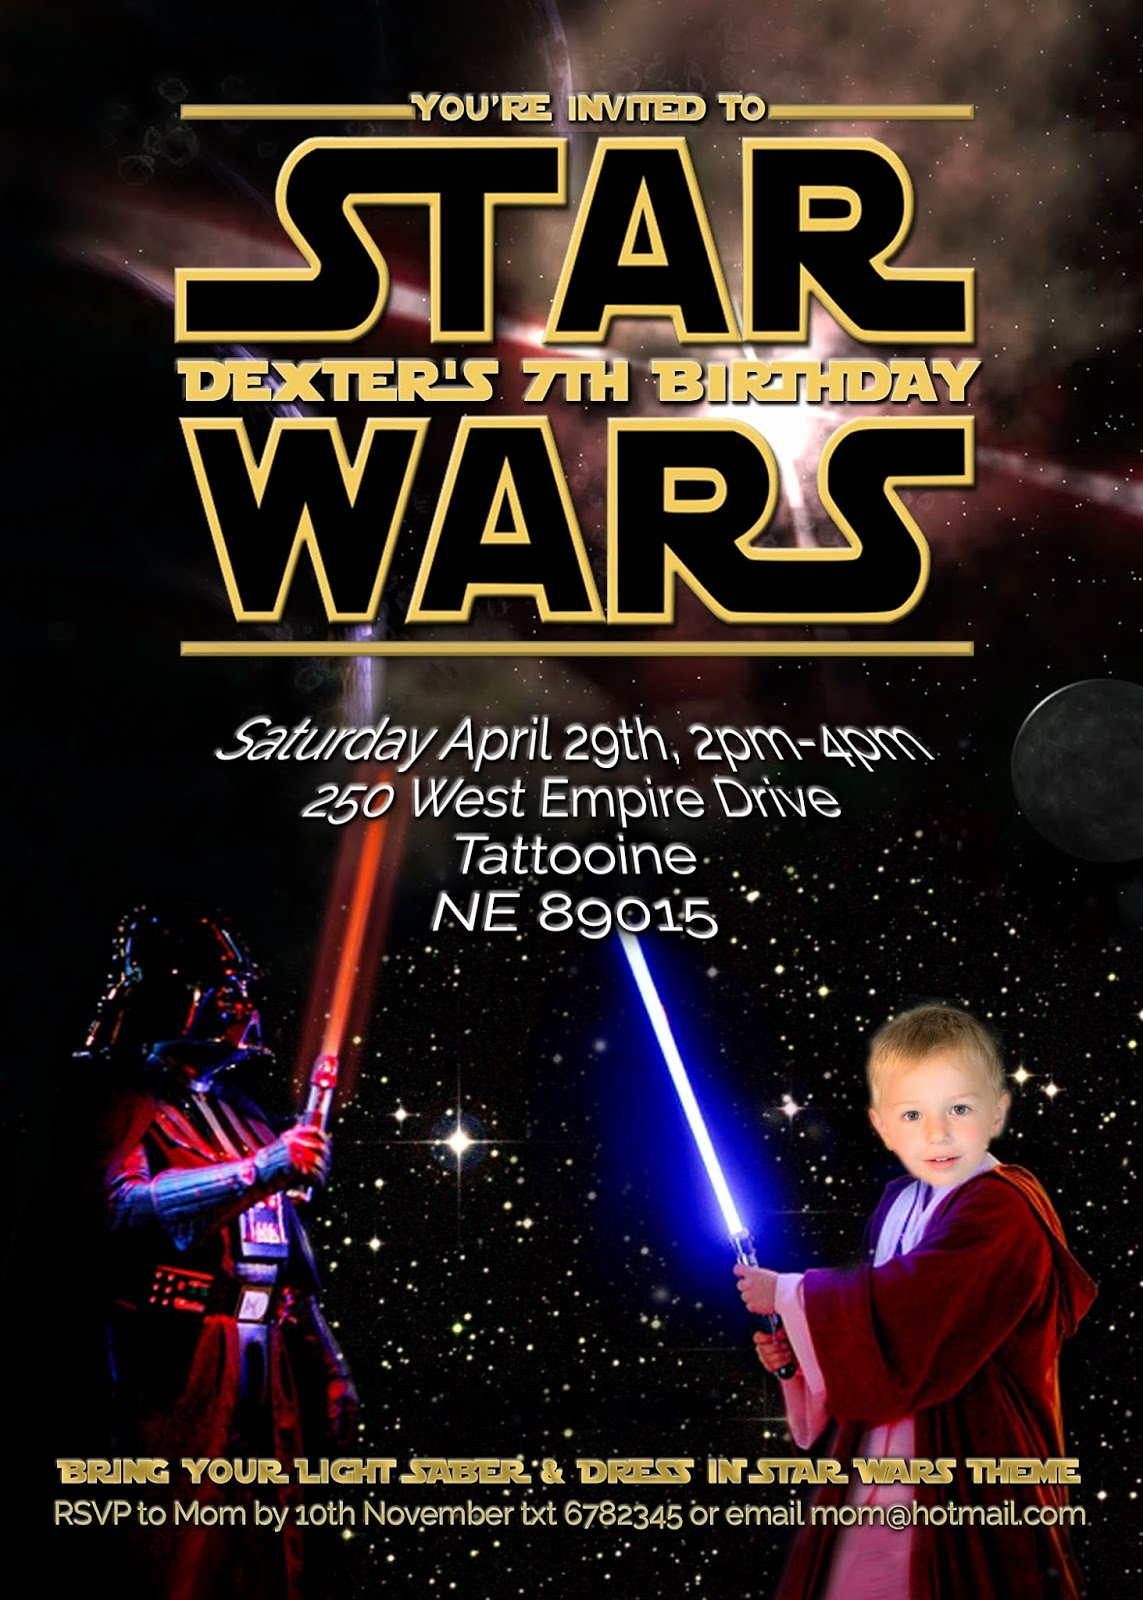 Star Wars Birthday Party Invitations Best Of Free Kids Party Invitations Star Wars Party Invitation Self Edit